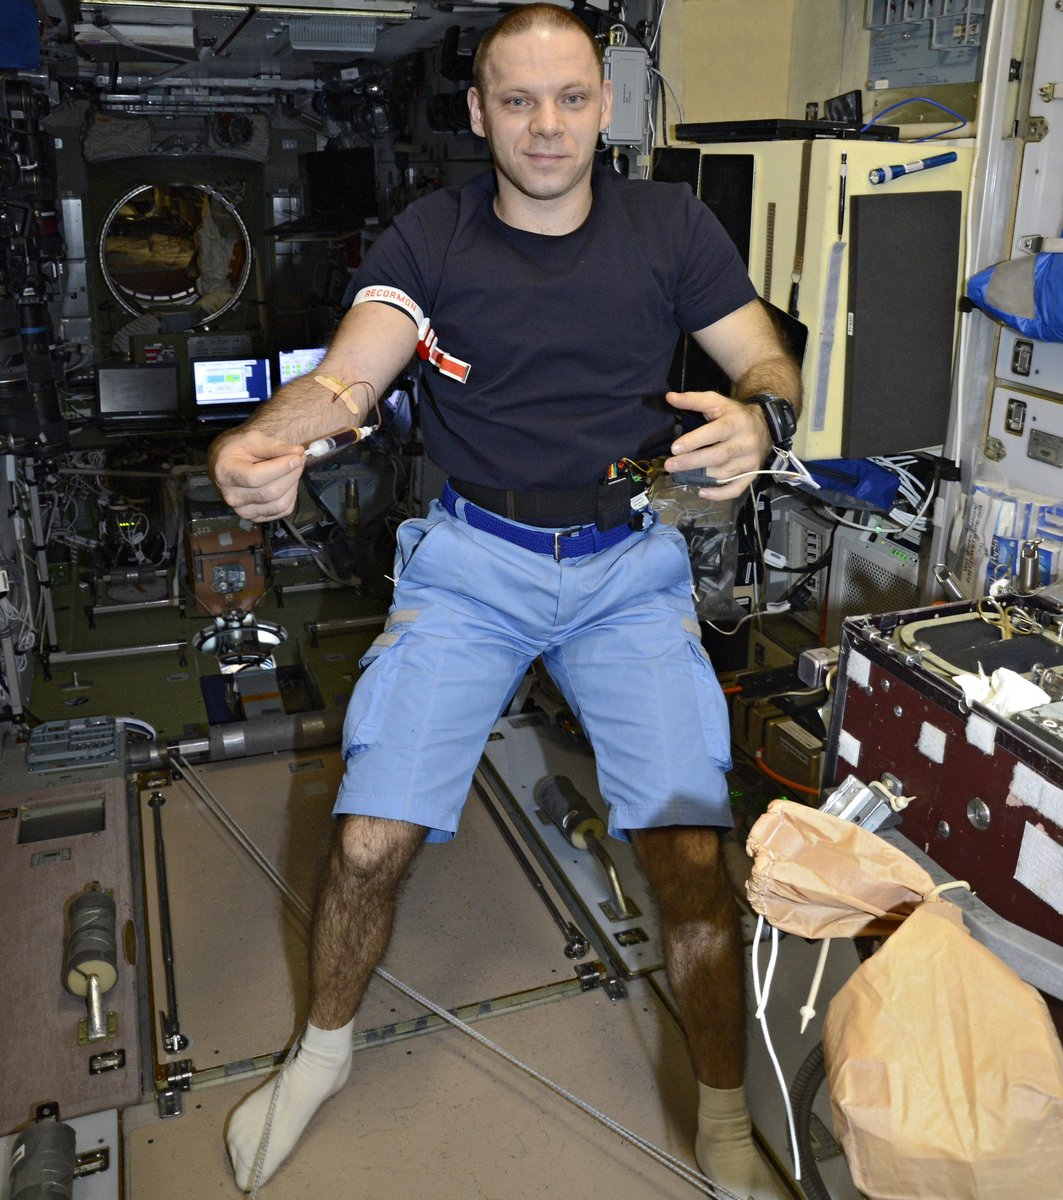 #Experiment Neuroimmunitet — studying the influence of stress of various genesis on the immune system before, during and after the flight. The results will provide data to choose measures to prevent unwanted immune response in stressful conditions in space and on the Earth.